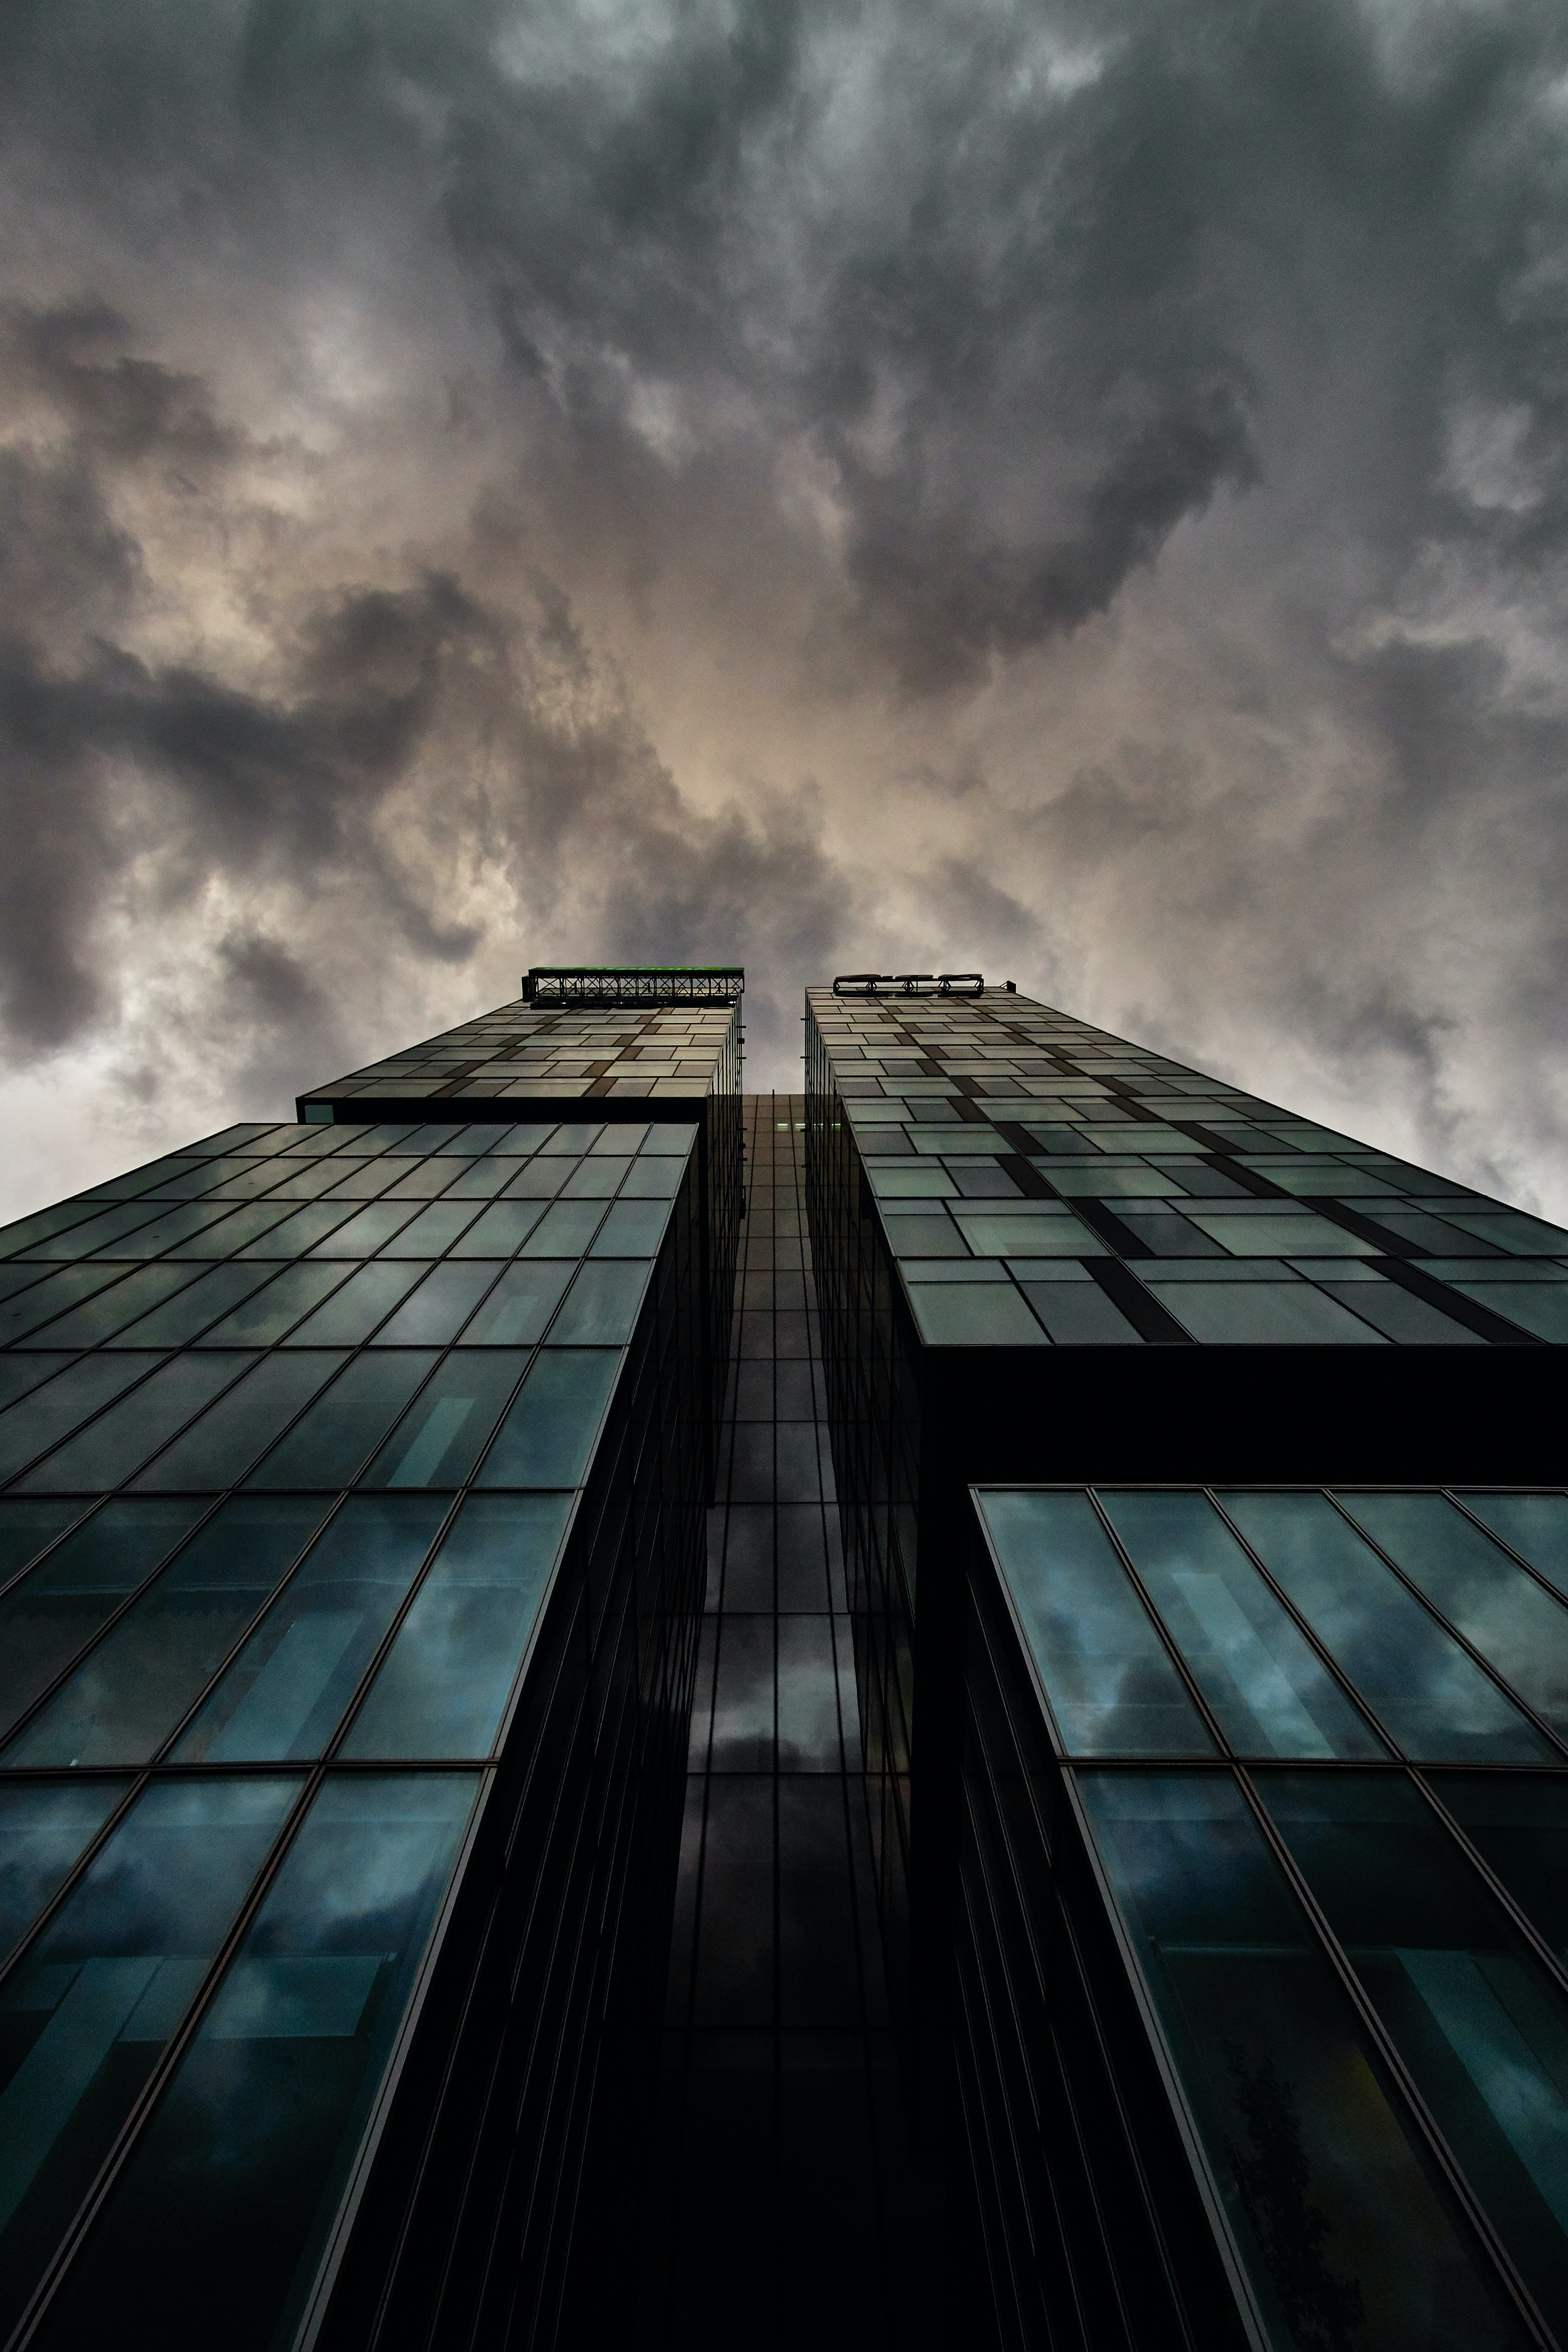 Looking up at dark clouds from the base of a modern skyscraper in Bucharest.